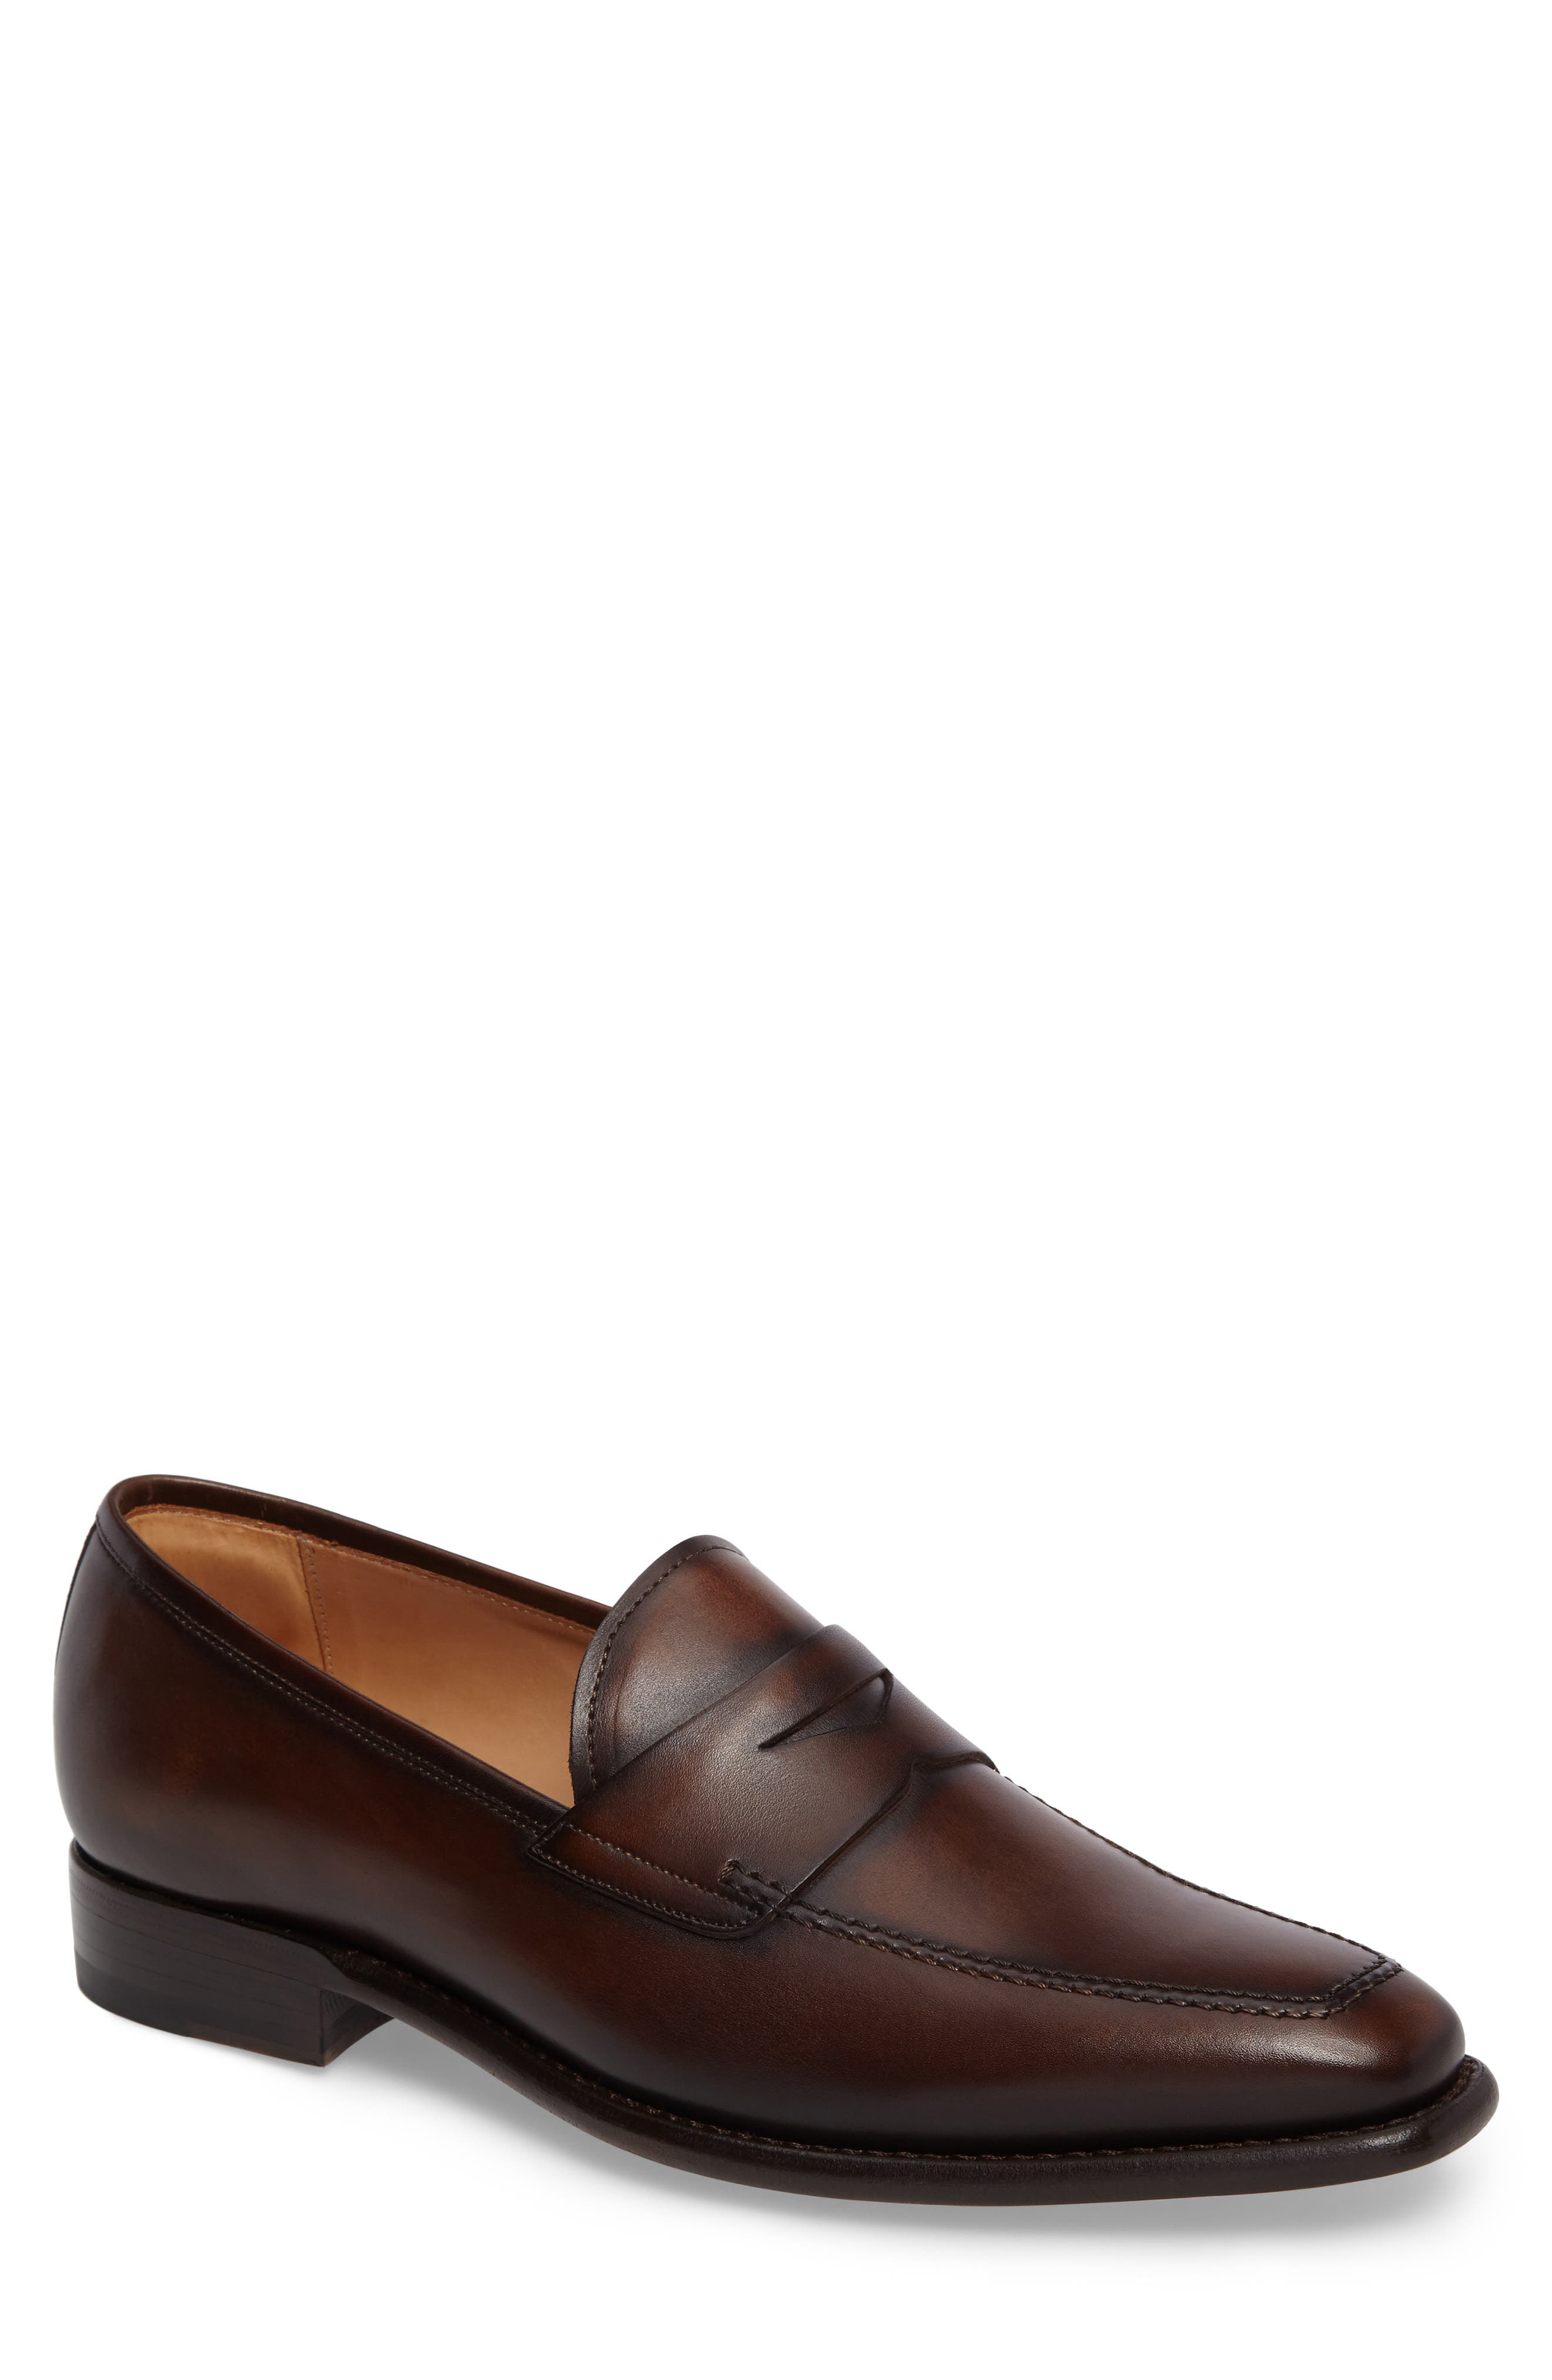 Claude Penny Loafer,                             Main thumbnail 1, color,                             BROWN LEATHER